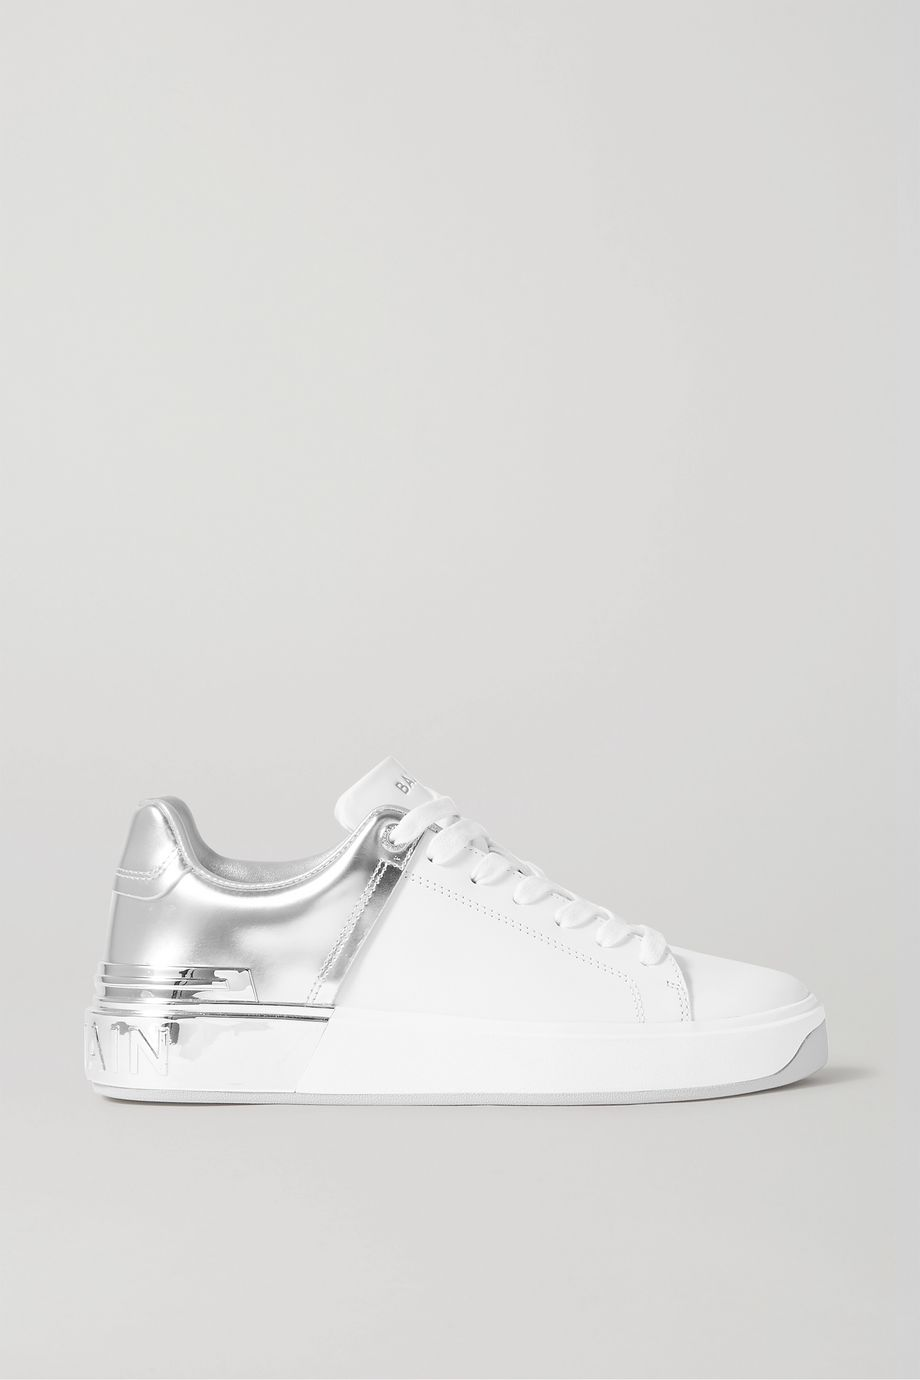 Balmain B-Court matte and metallic leather sneakers